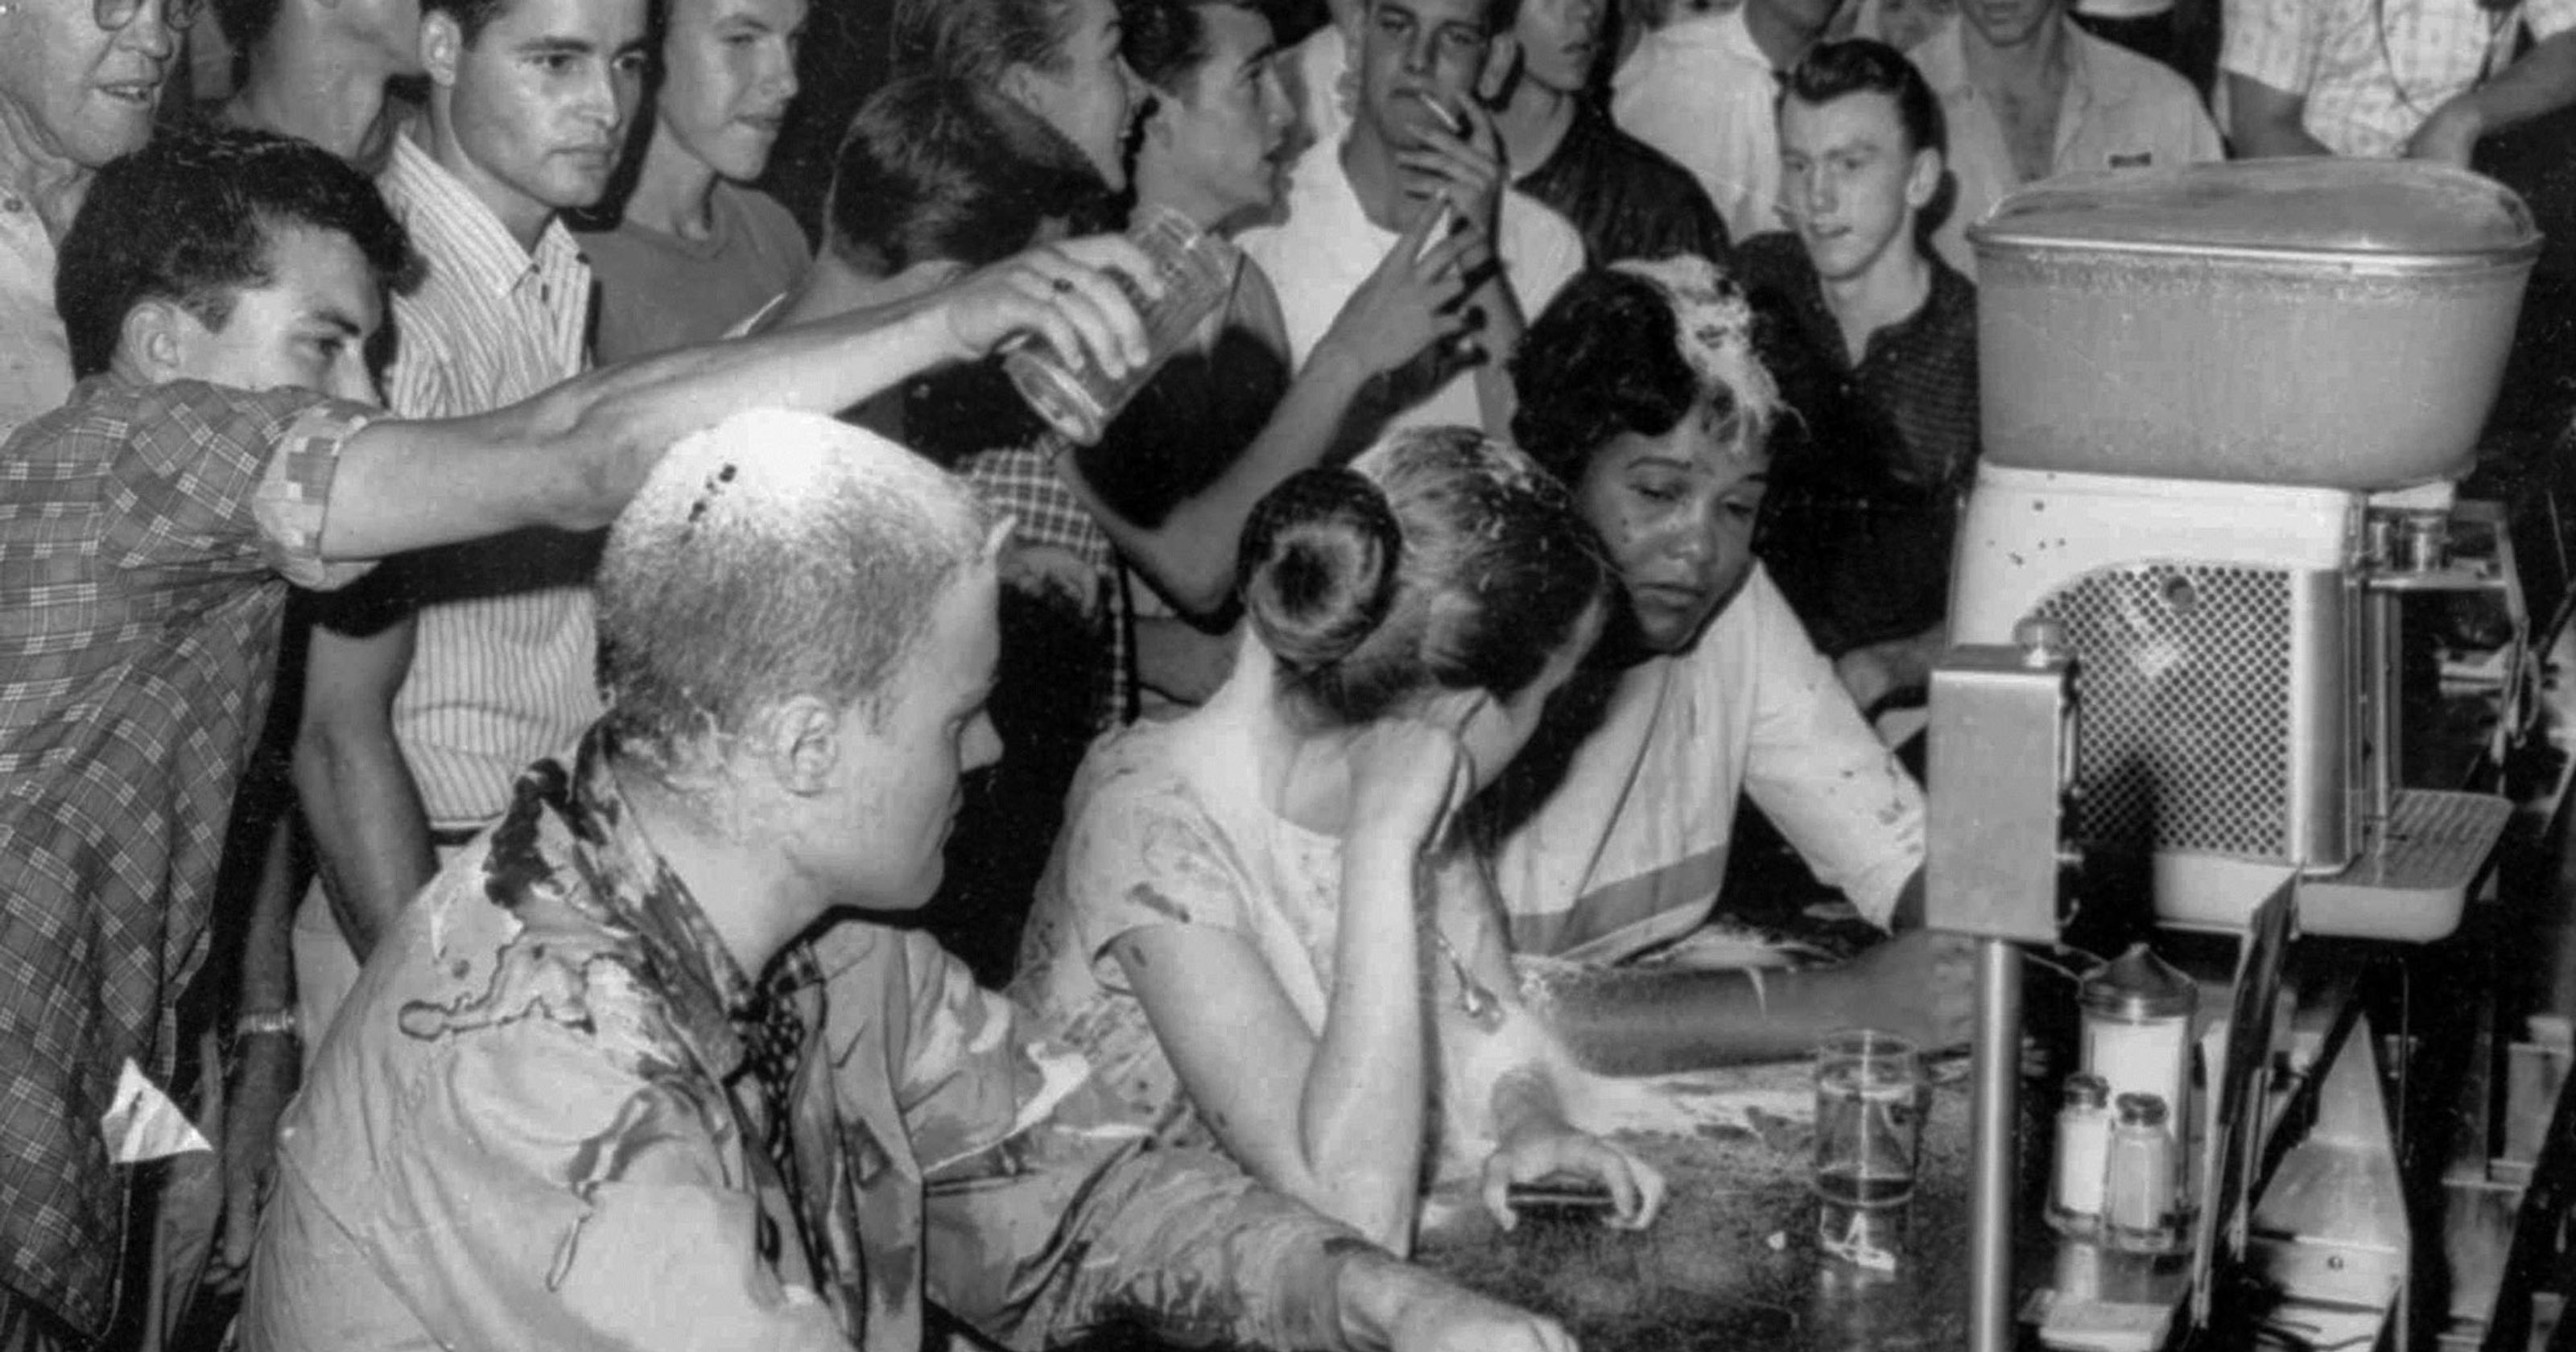 People at lunch counter